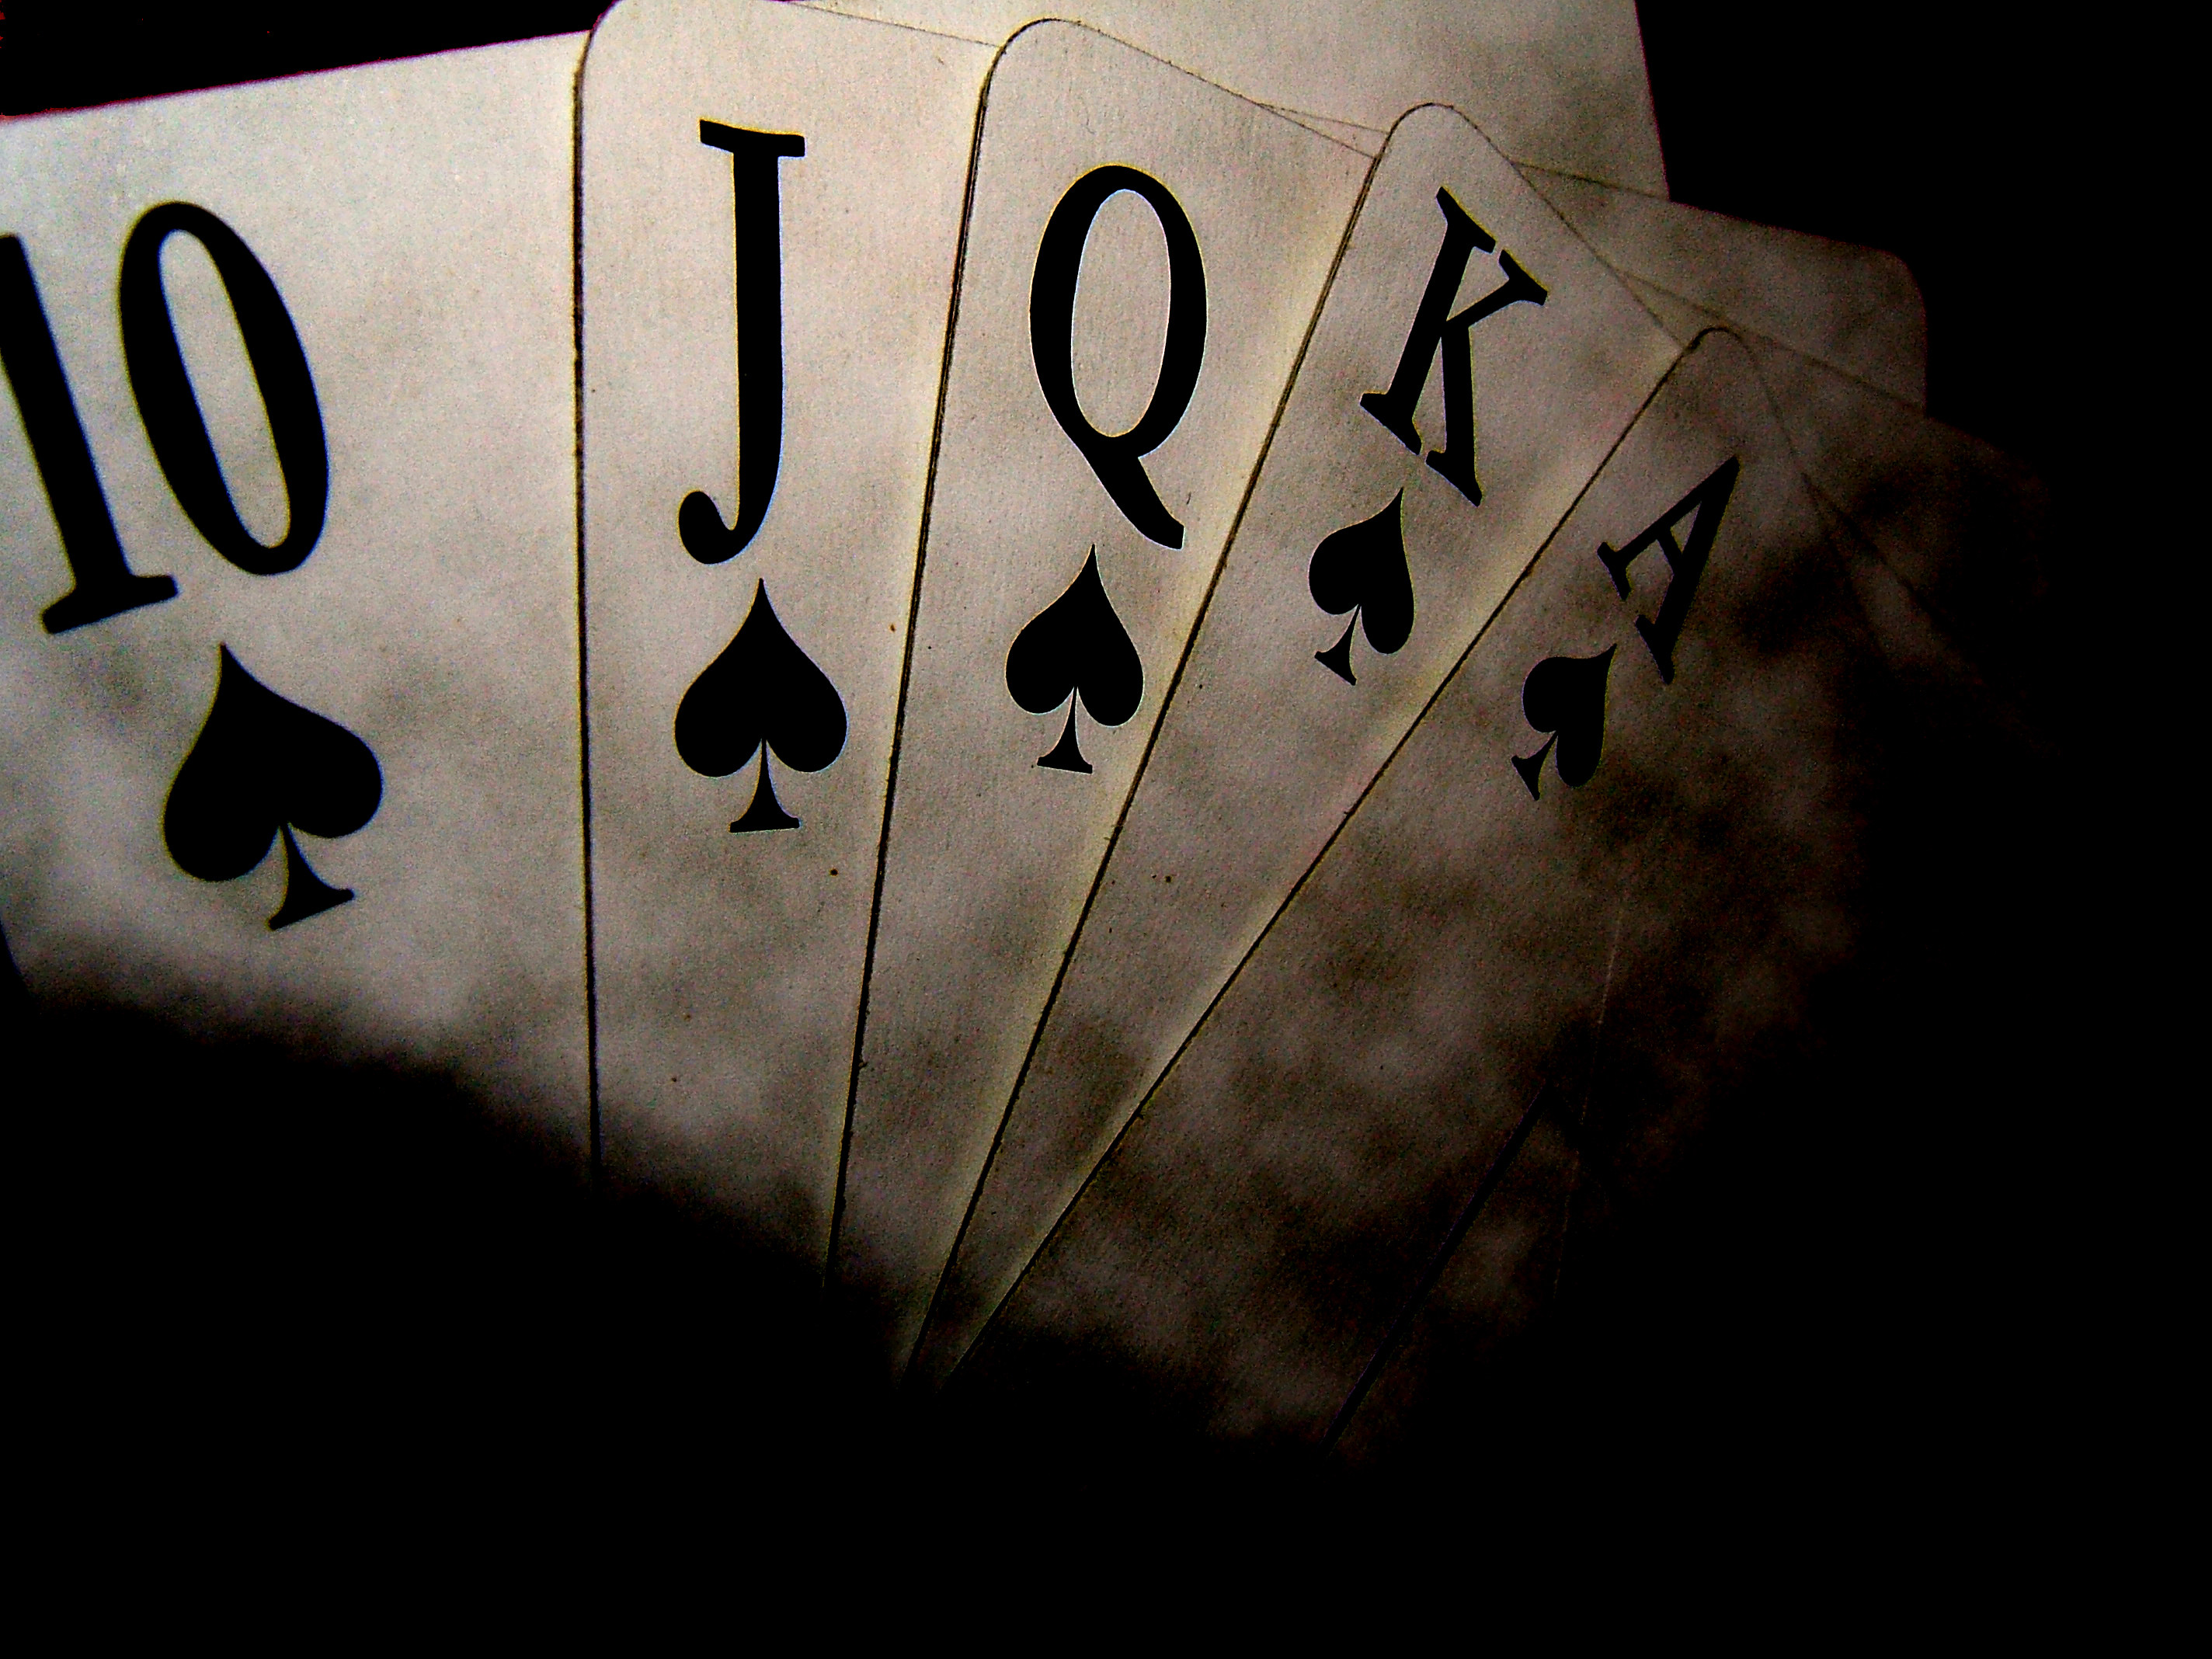 Res: 2848x2136, HD Wallpaper | Background Image ID:449381.  Game Poker